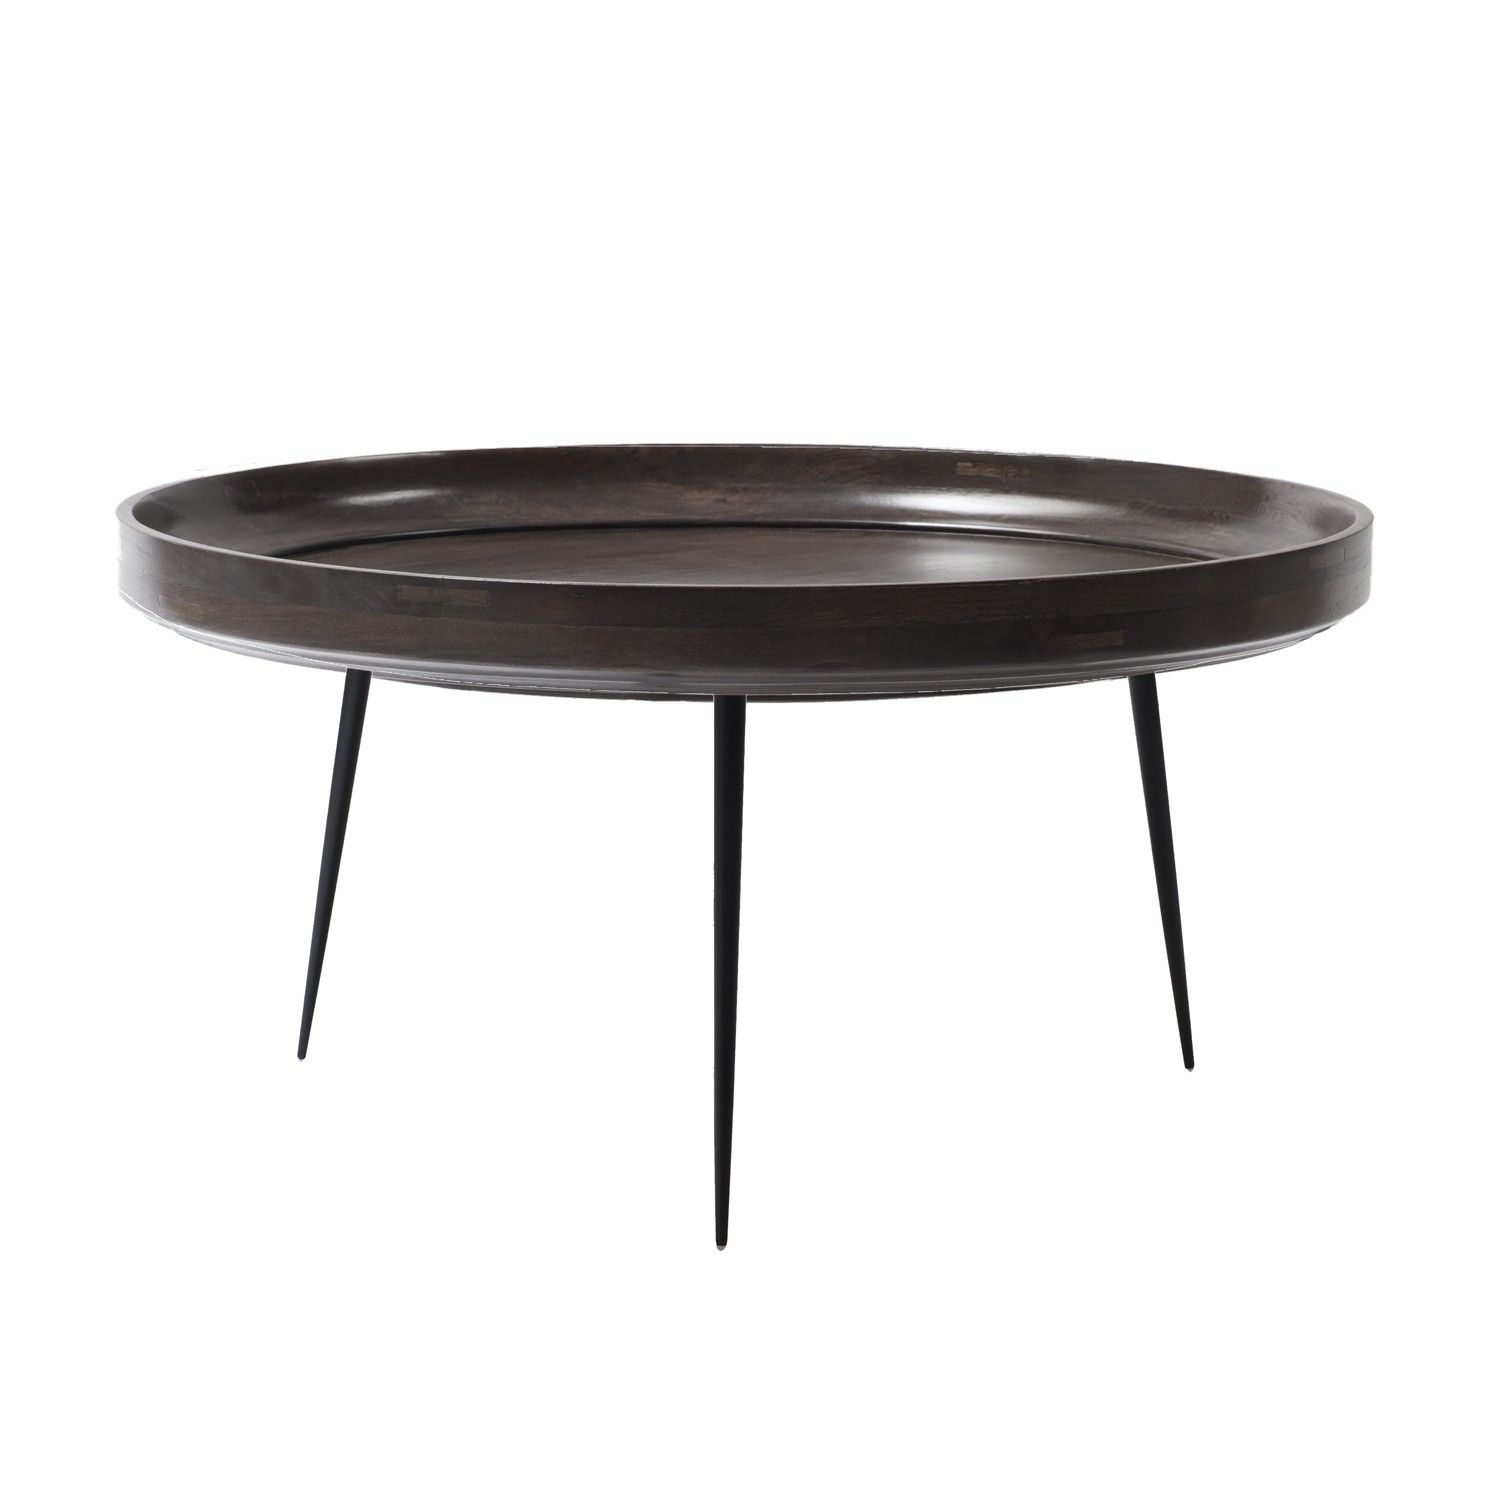 Mater Bowl Table Xl Coffee Table Contemporary Coffee Table Modern Accent Tables [ 1500 x 1500 Pixel ]